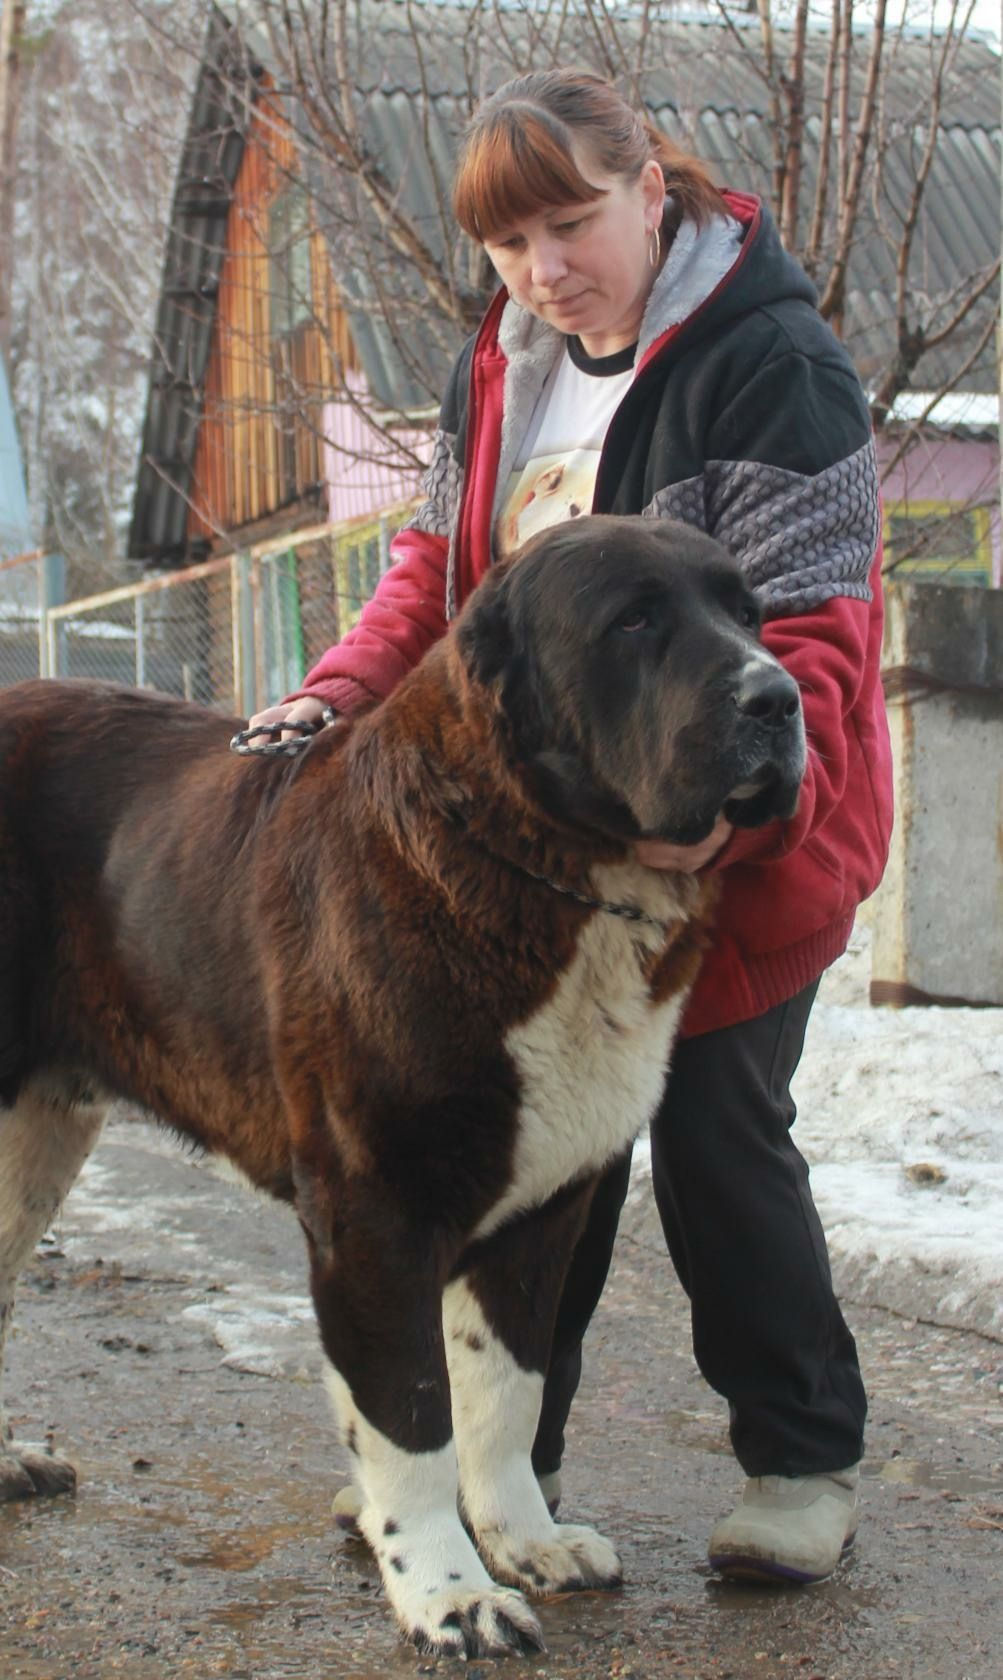 Pin By Sophia Politino On Favourite Dogs Kangal Dog Dogs Giant Dogs